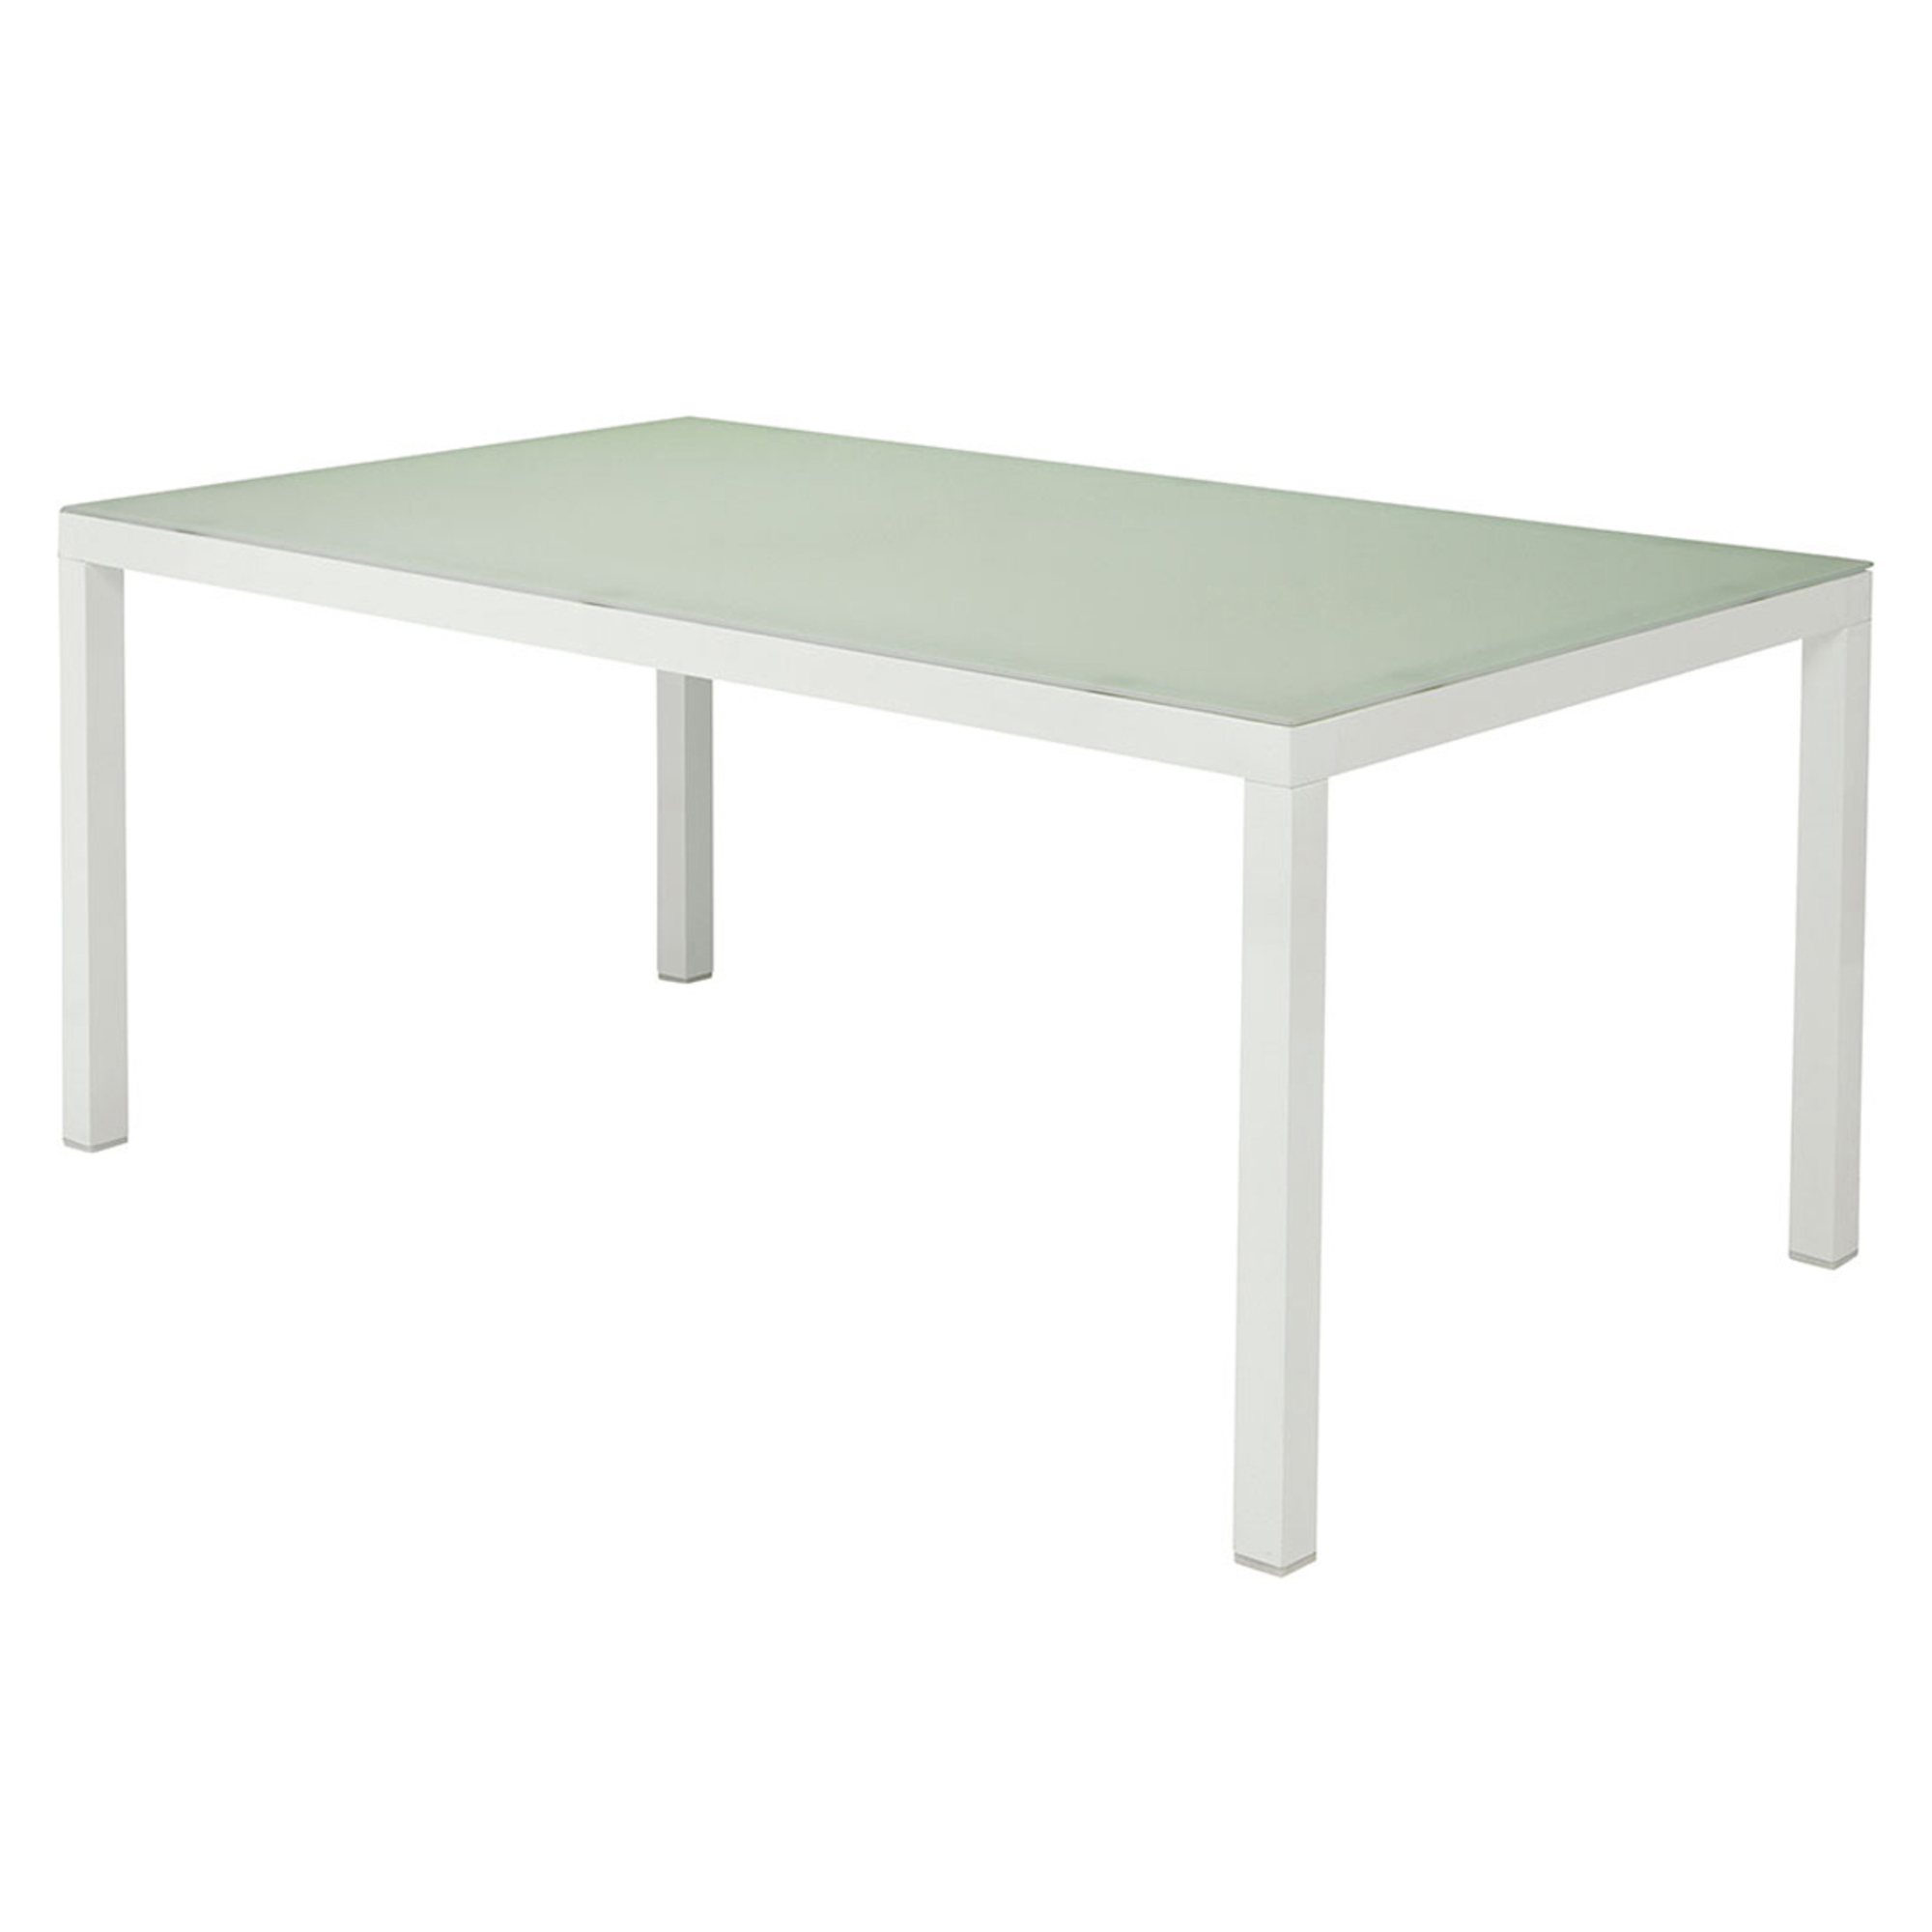 Table verre trempe - Table ronde verre trempe ...